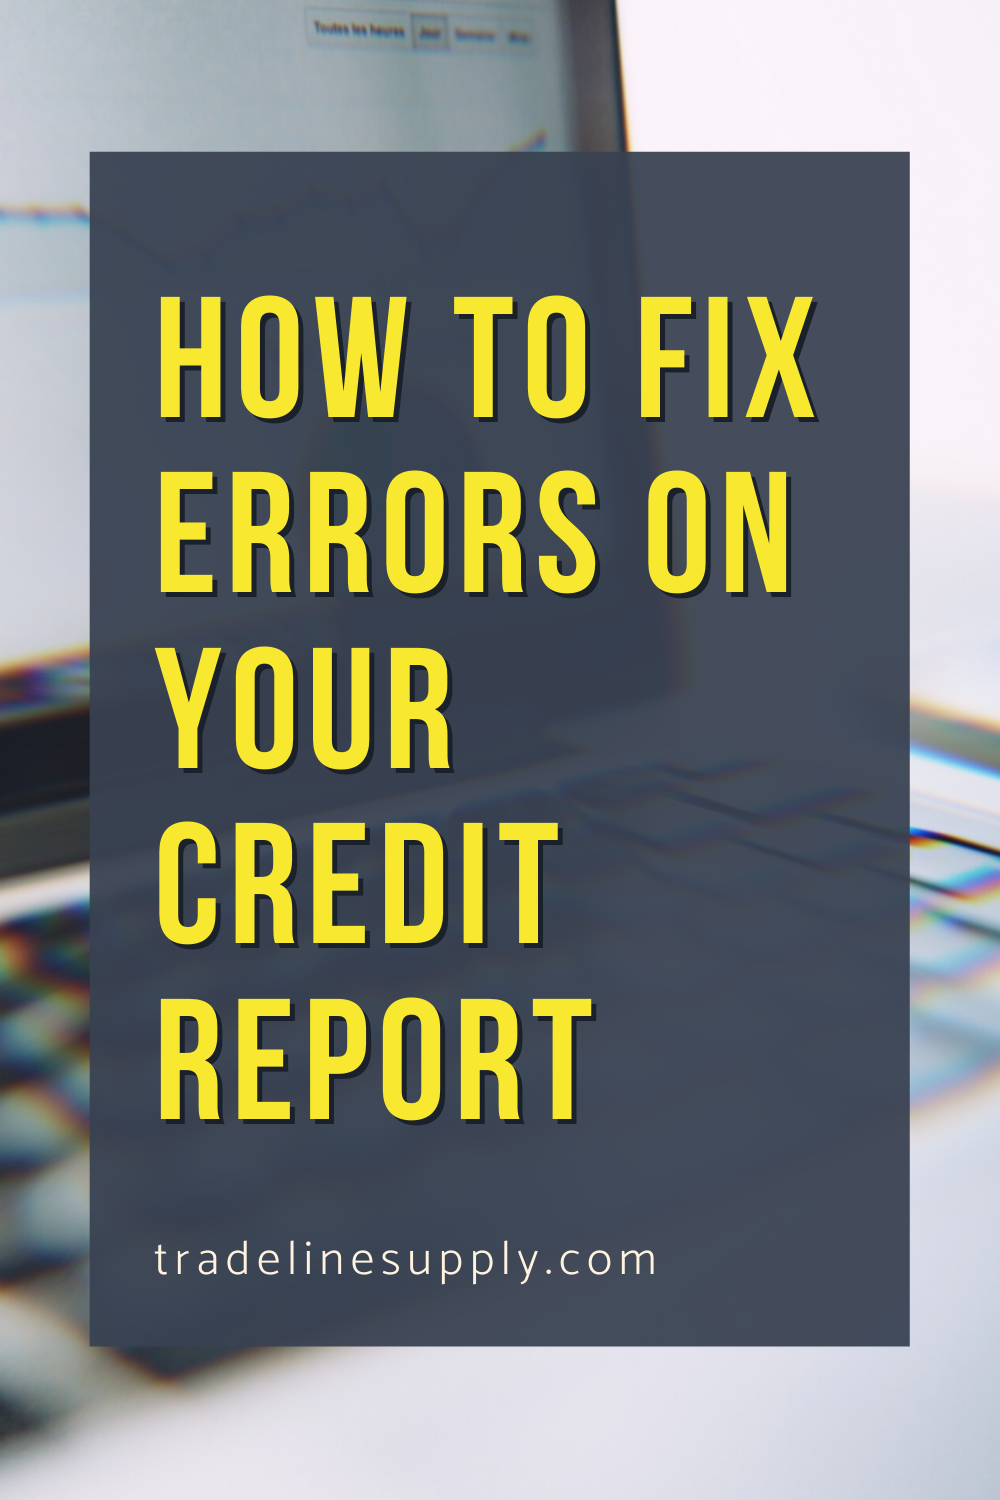 How to Fix Errors on Your Credit Report - Pinterest